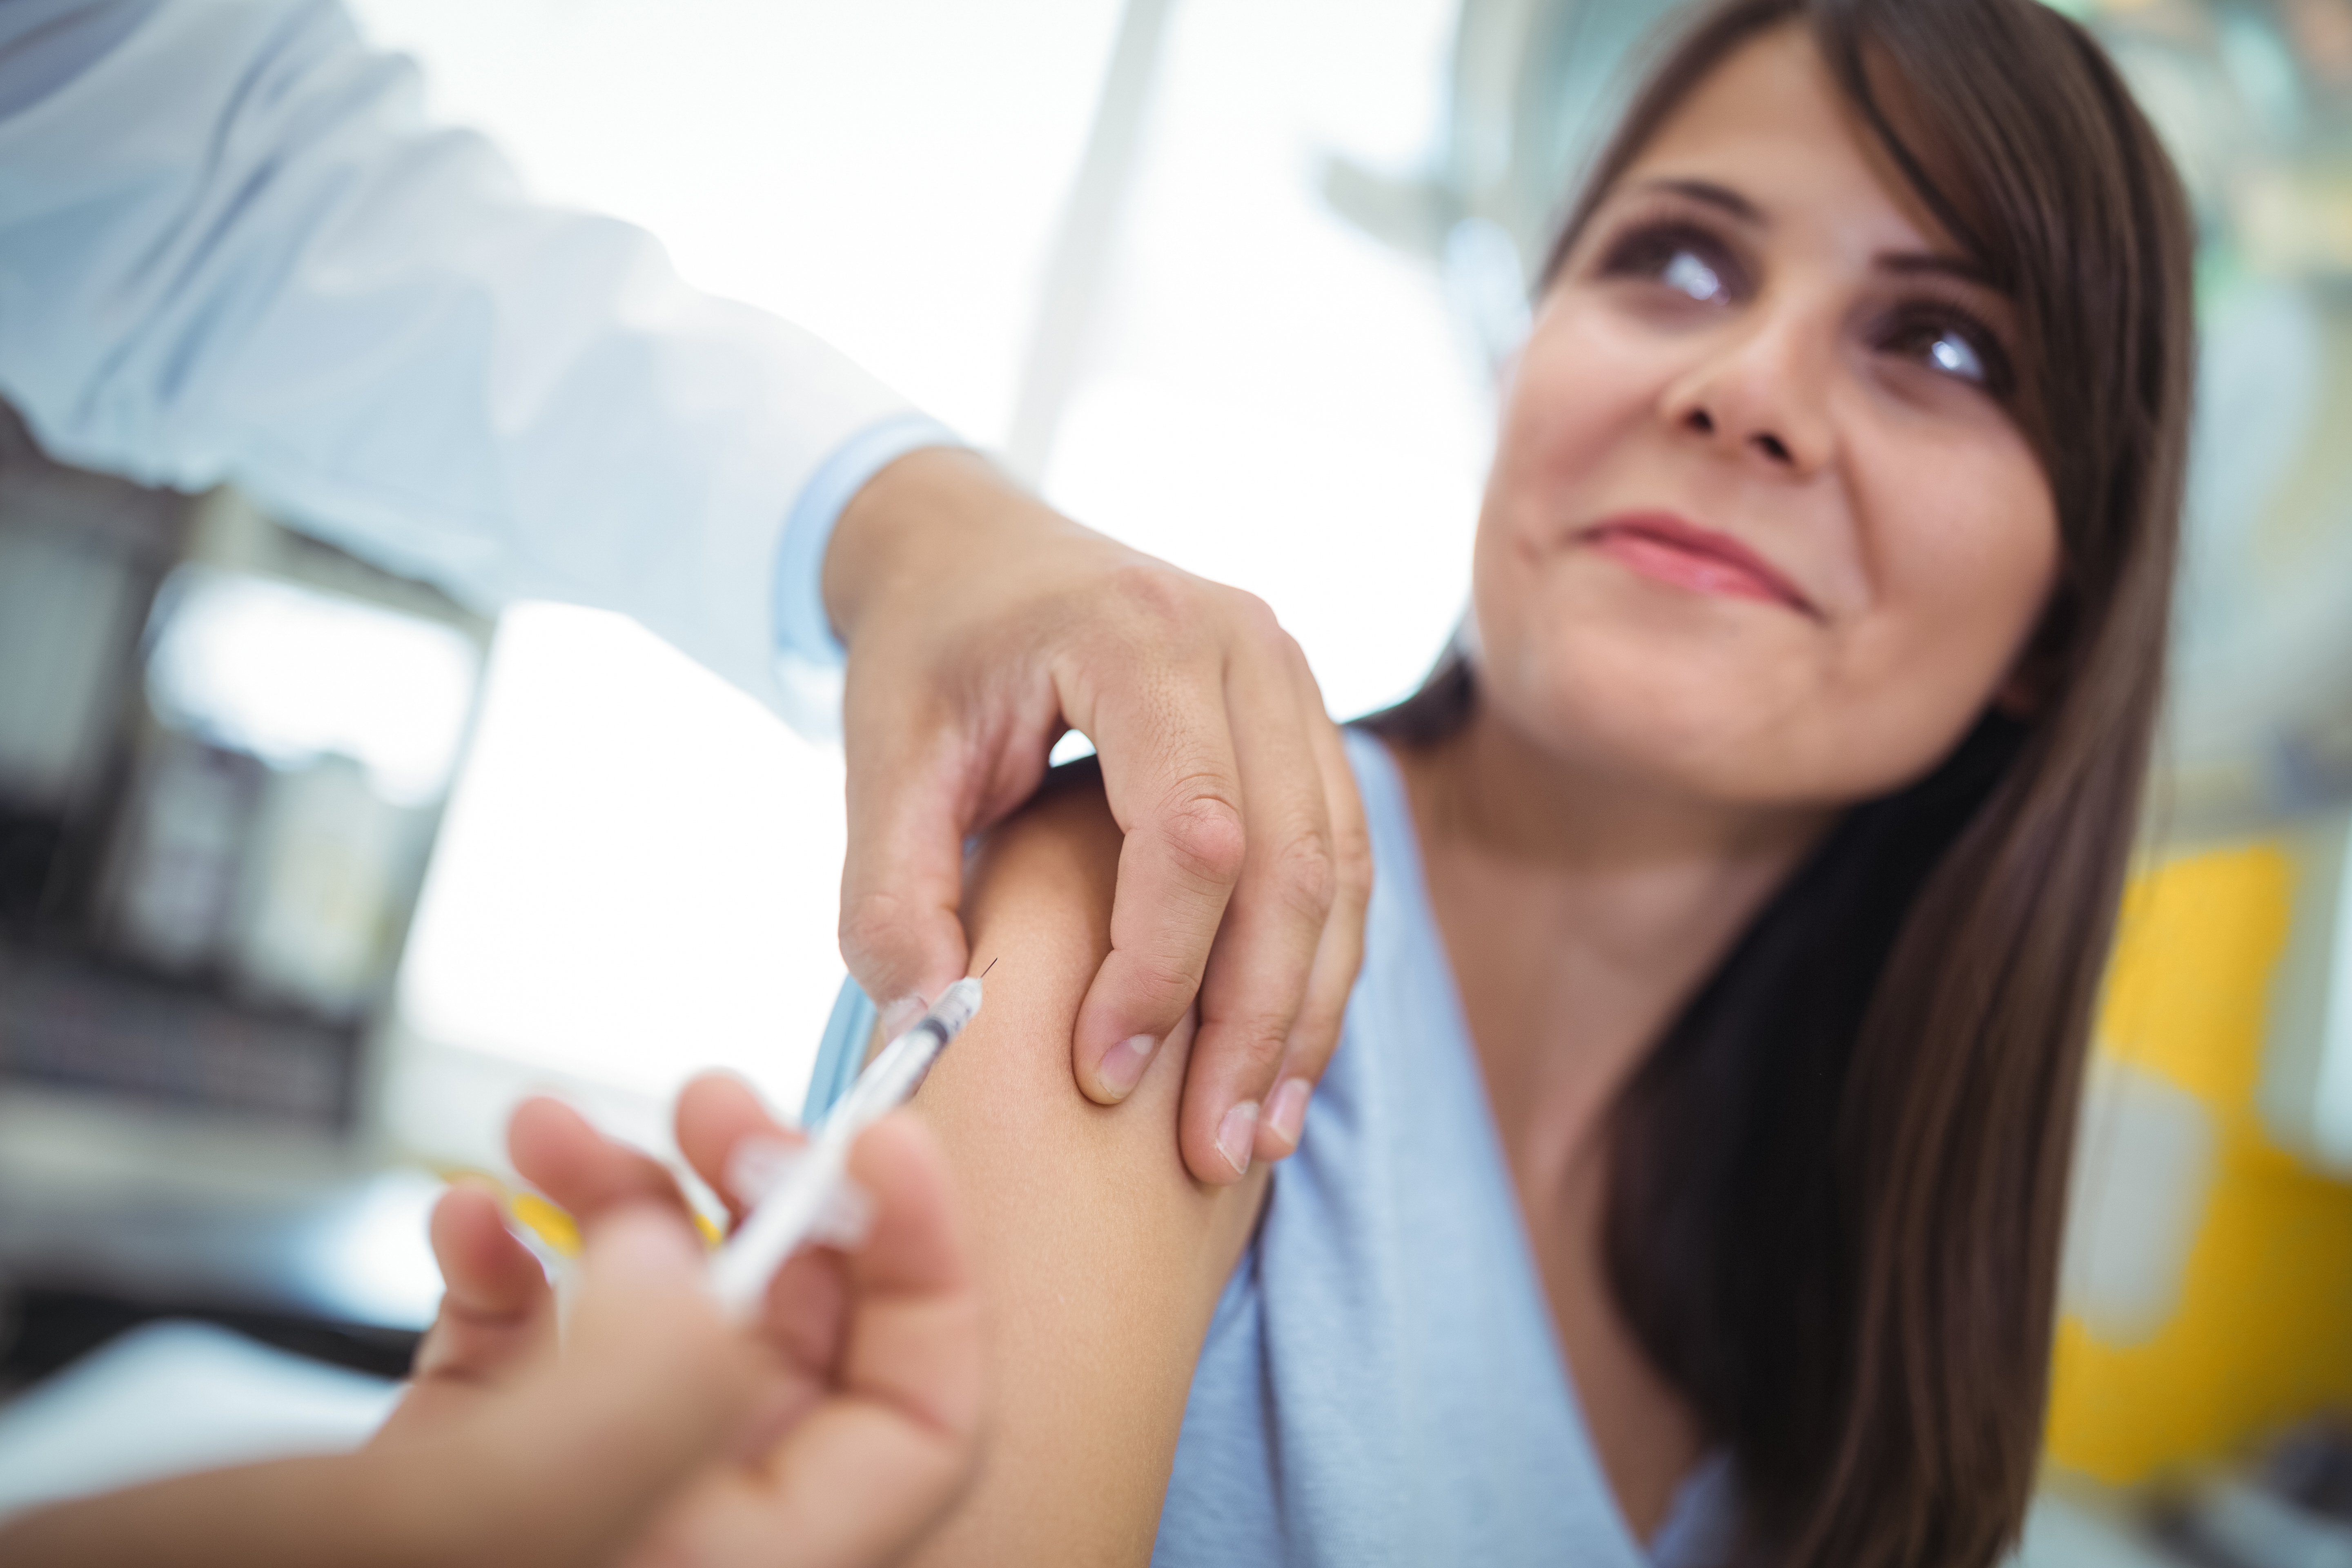 A woman receiving a flu shot